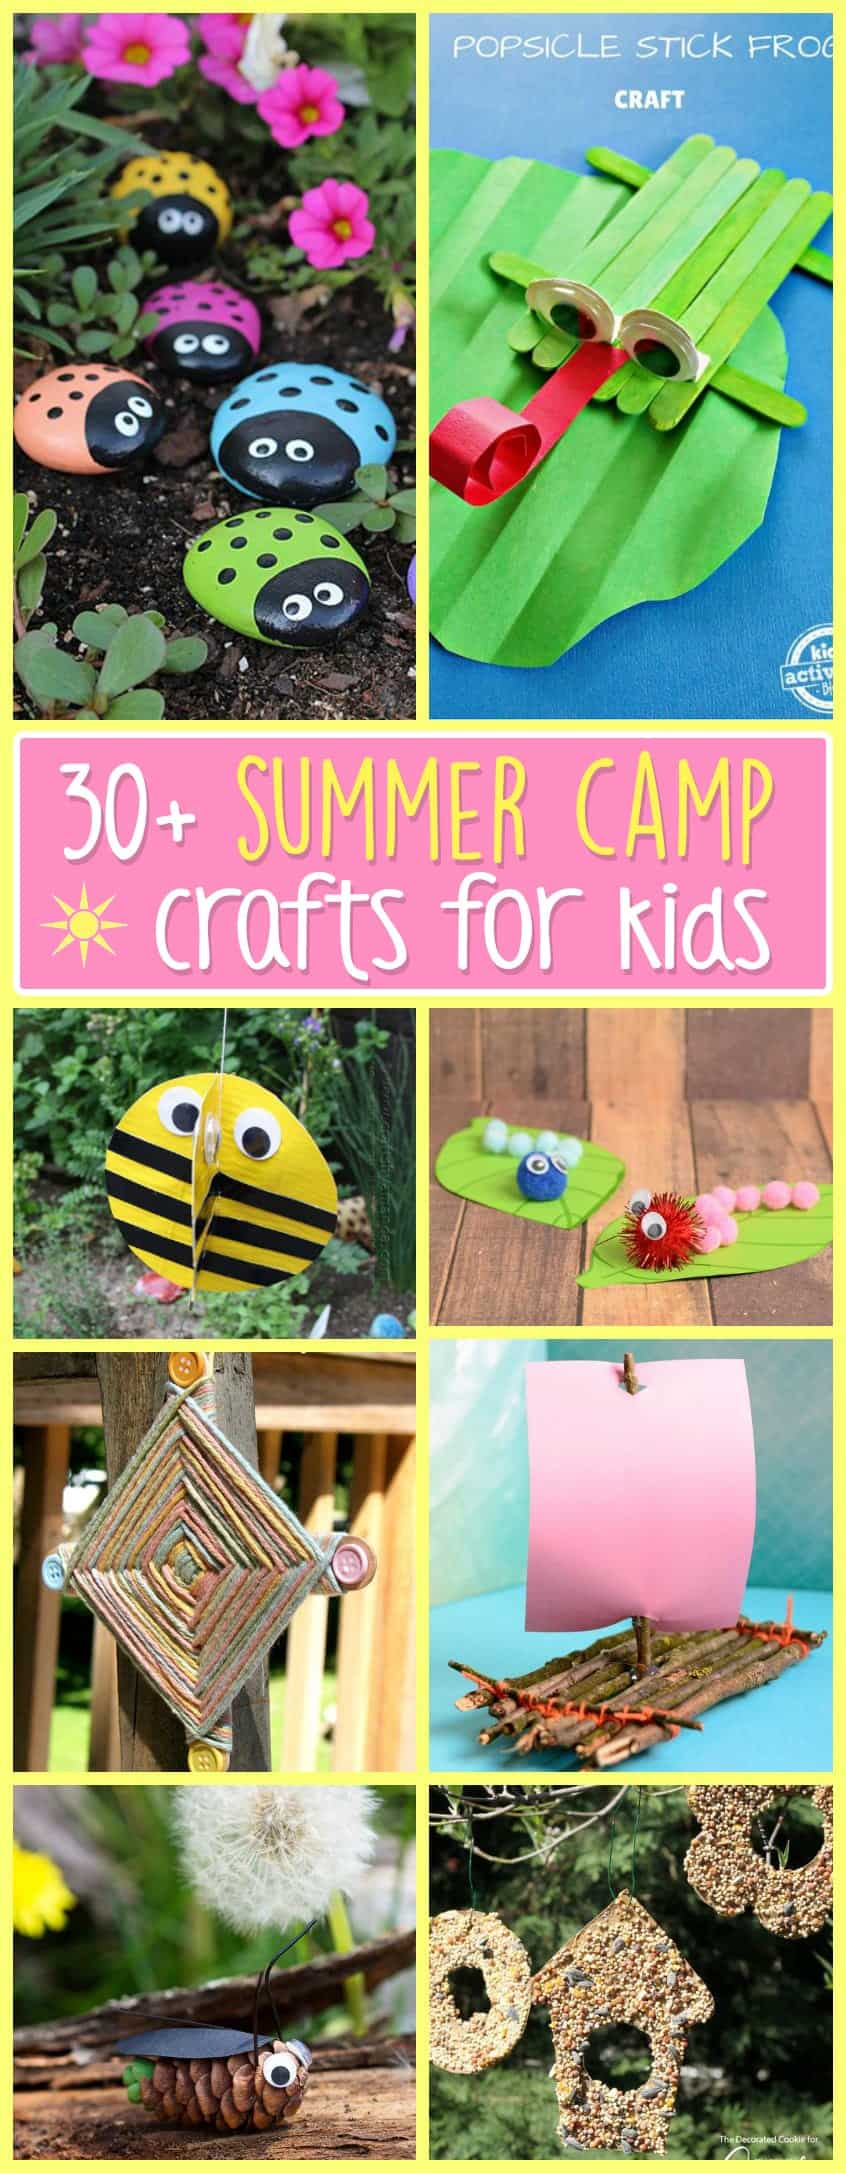 Summer Camp Crafts Nurture Their Creative Minds With These Fun Ideas While Having In